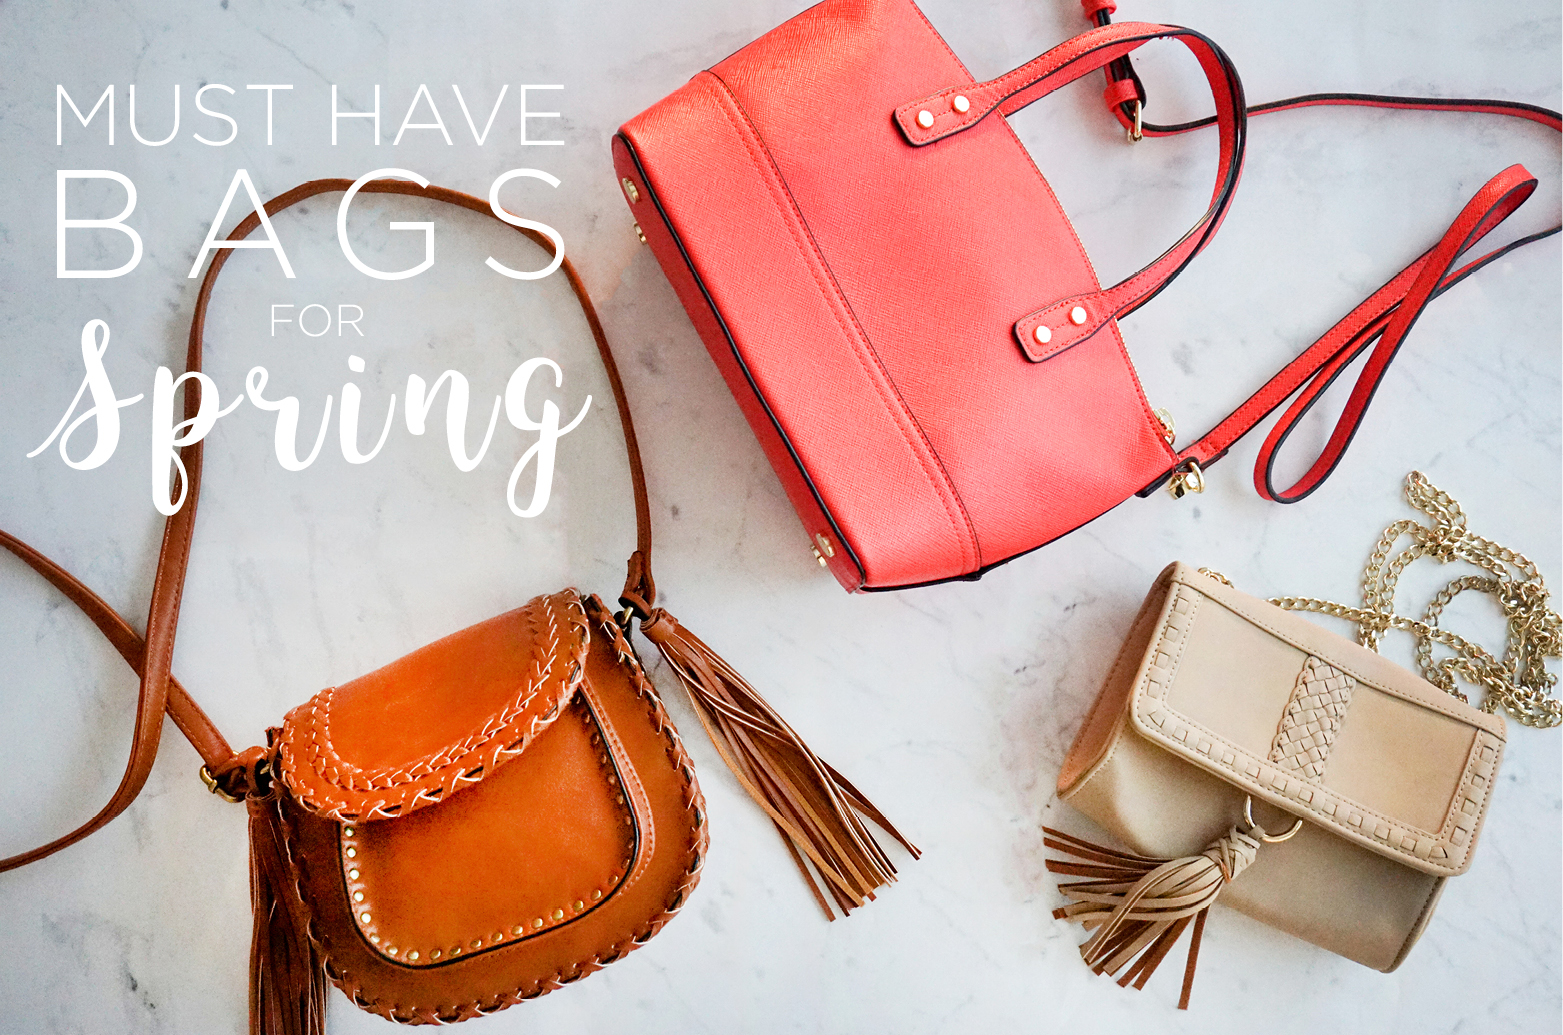 Must Have Bags for Spring